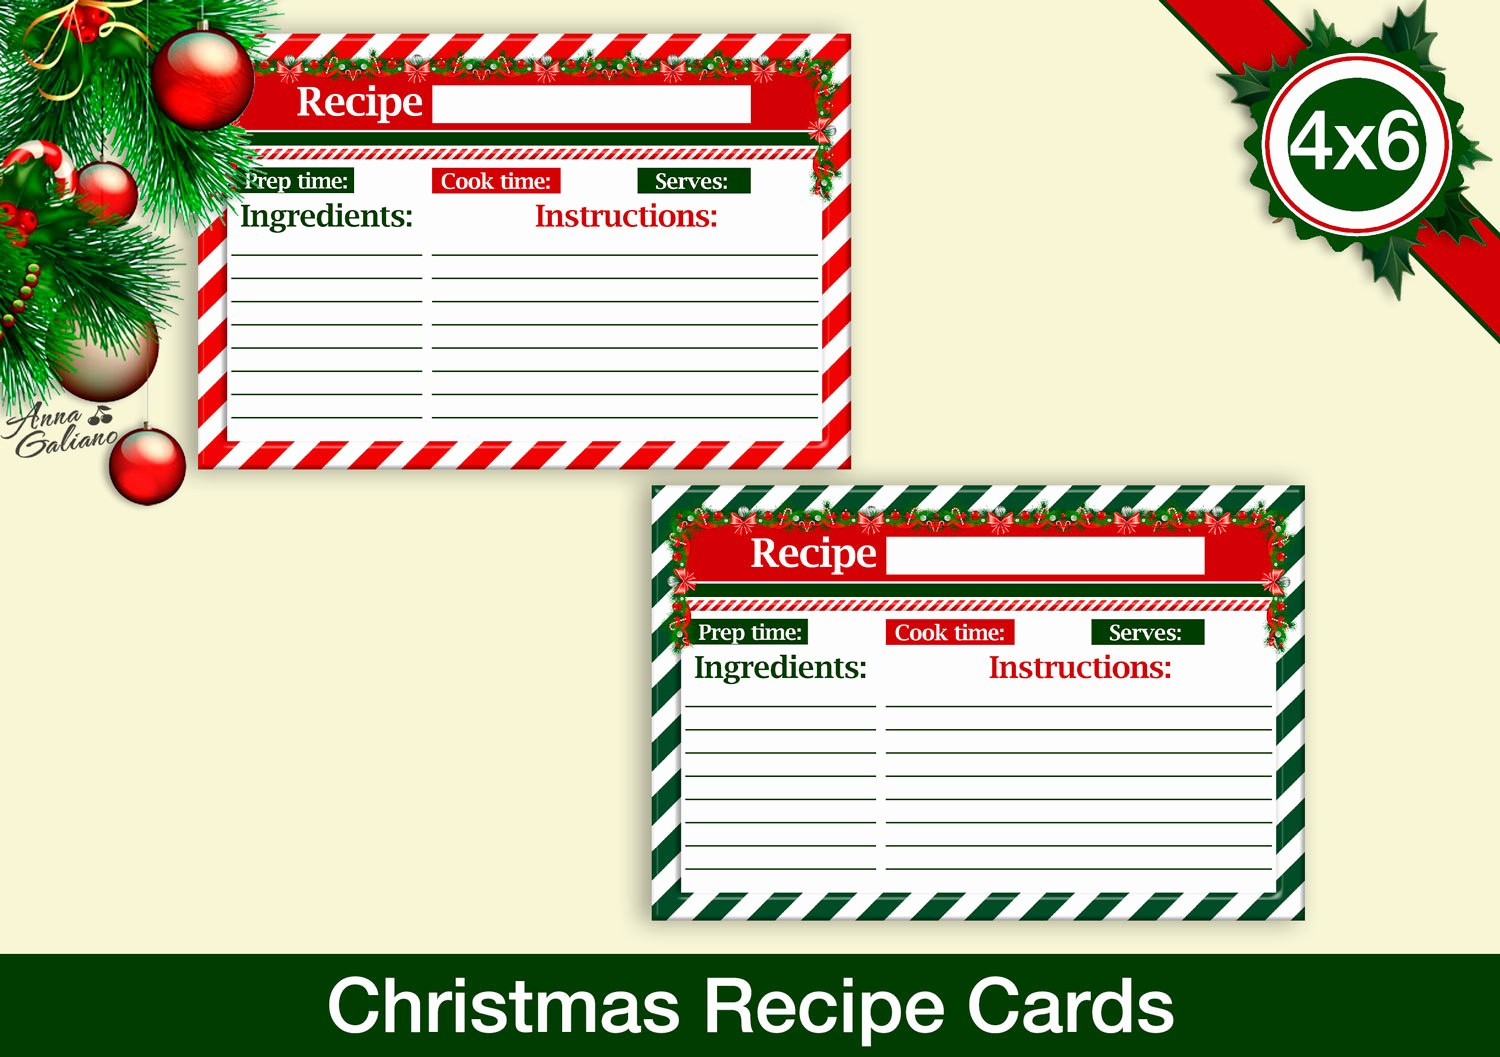 Holiday Recipe Card Template Free Inspirational Christmas Recipe Cards 4x6 Recipe Cards Printable Recipe